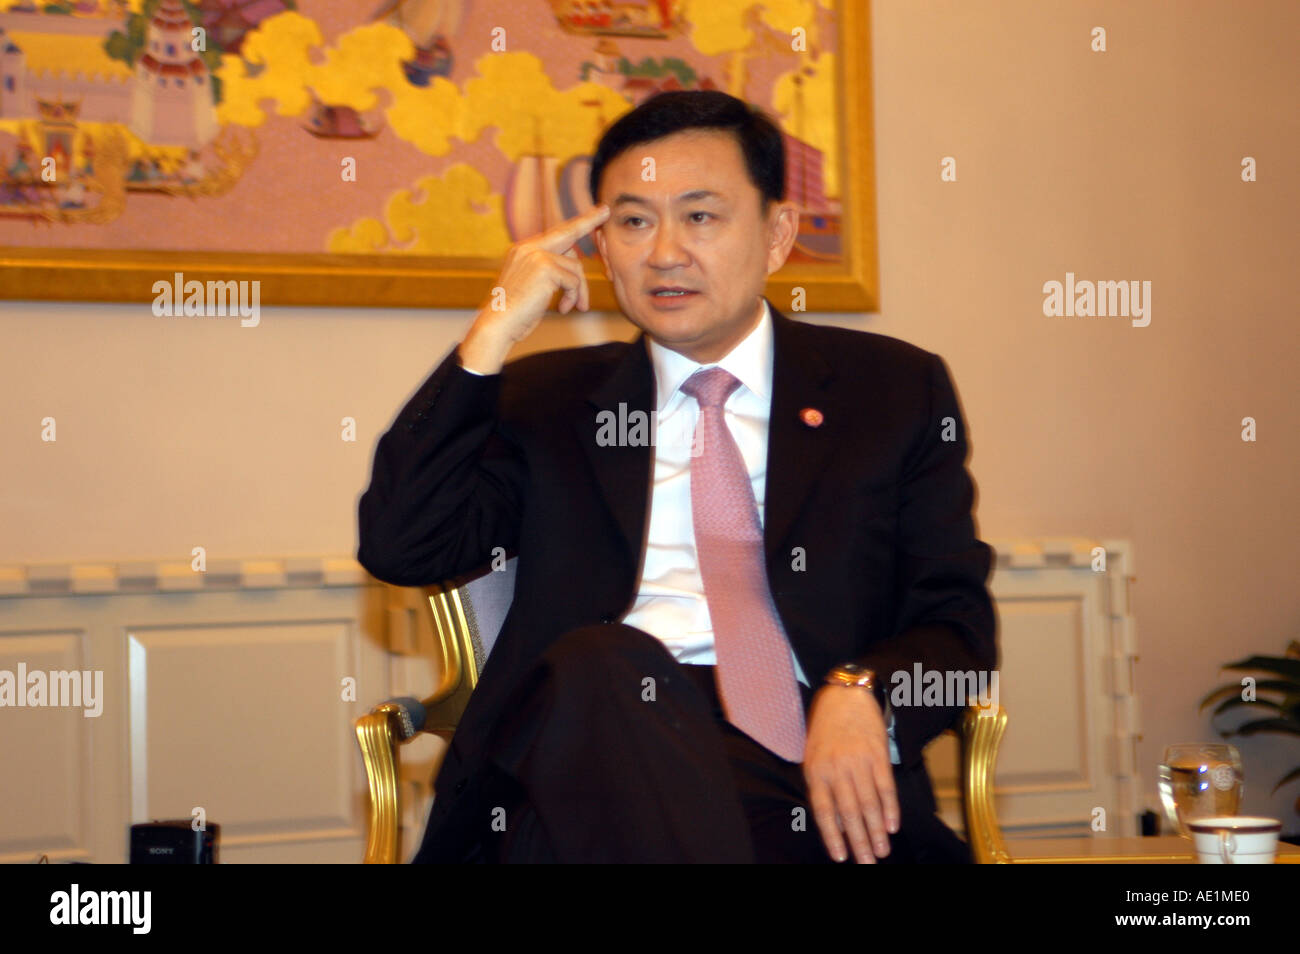 Prime Minister of Thailand Thaksin Shinawatra talks at Government House - Stock Image